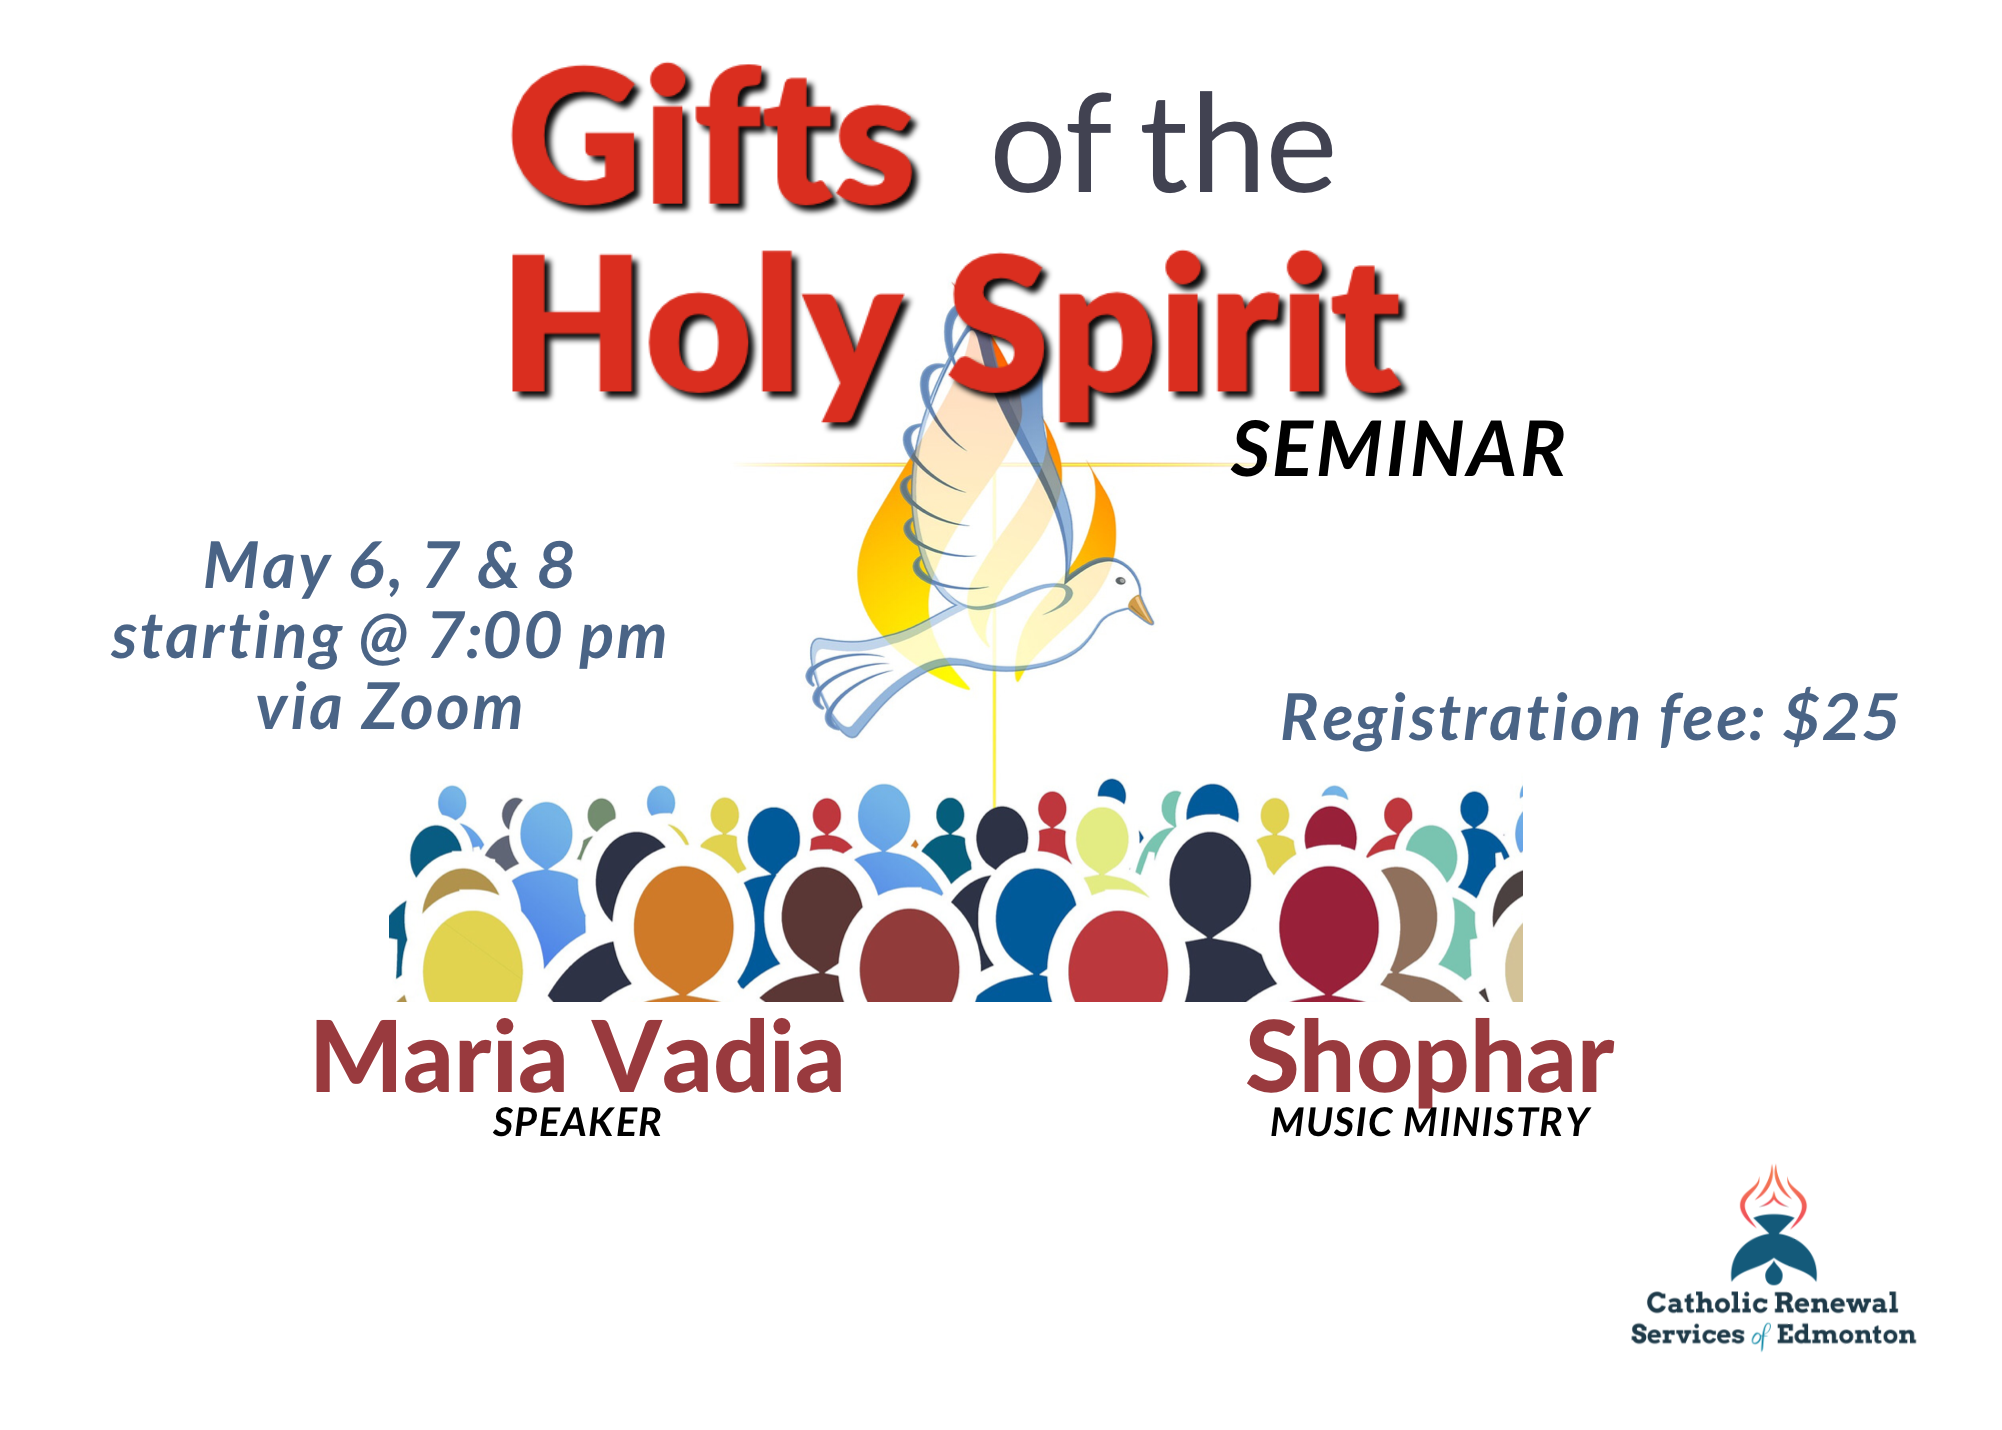 Gifts of the Holy Spirit Seminar